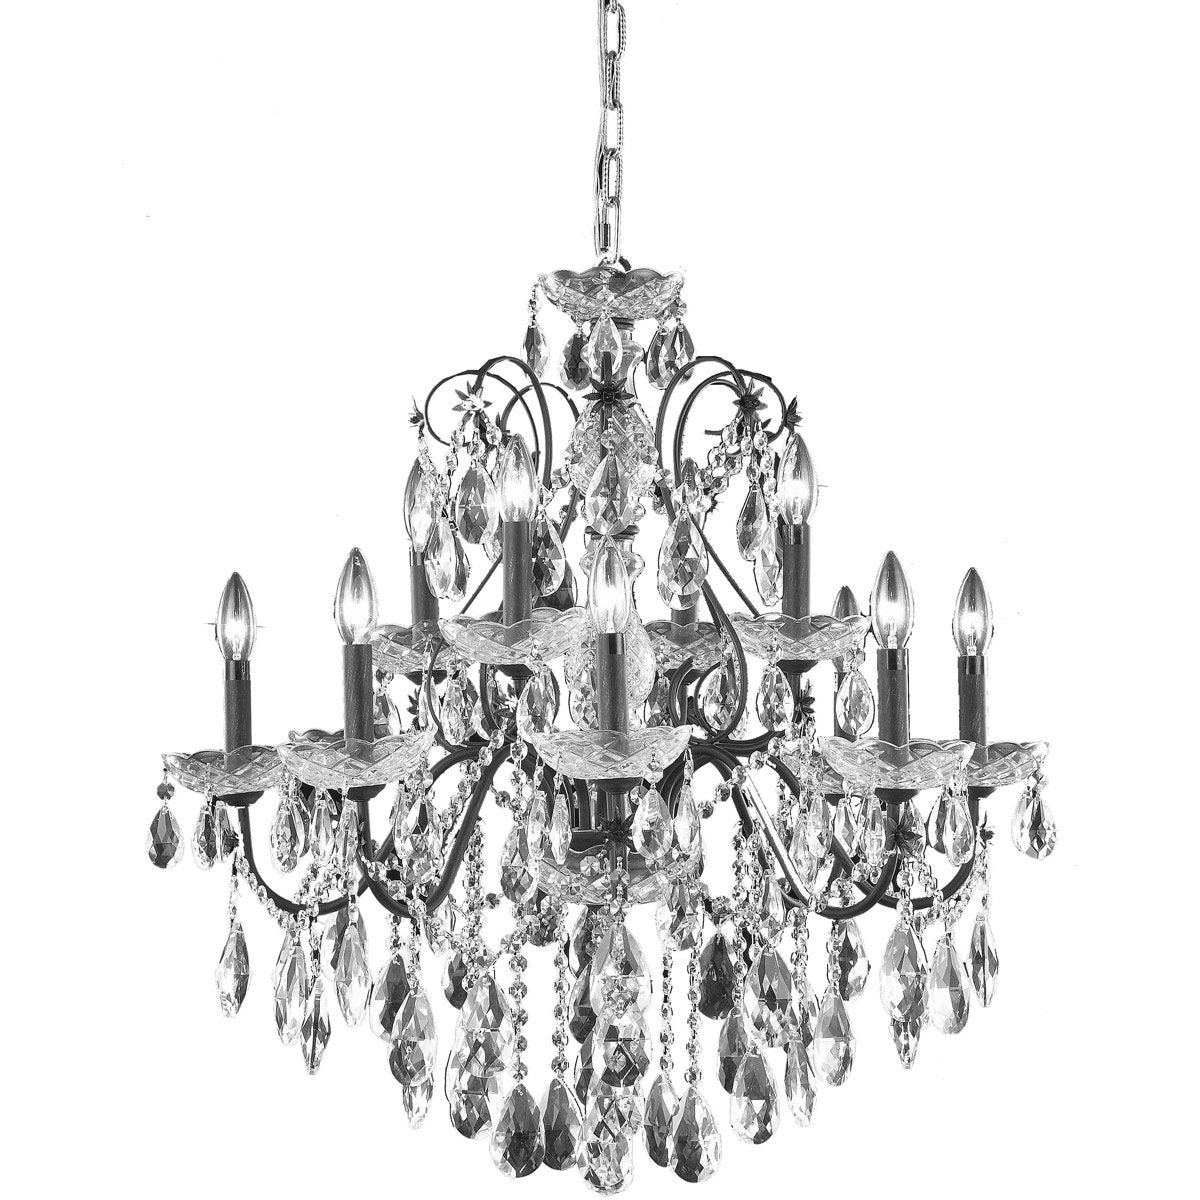 St. Francis 28 Crystal Chandelier With 12 Lights - Dark Bronze Finish And Spectra Swarovski Crystal Chandelier